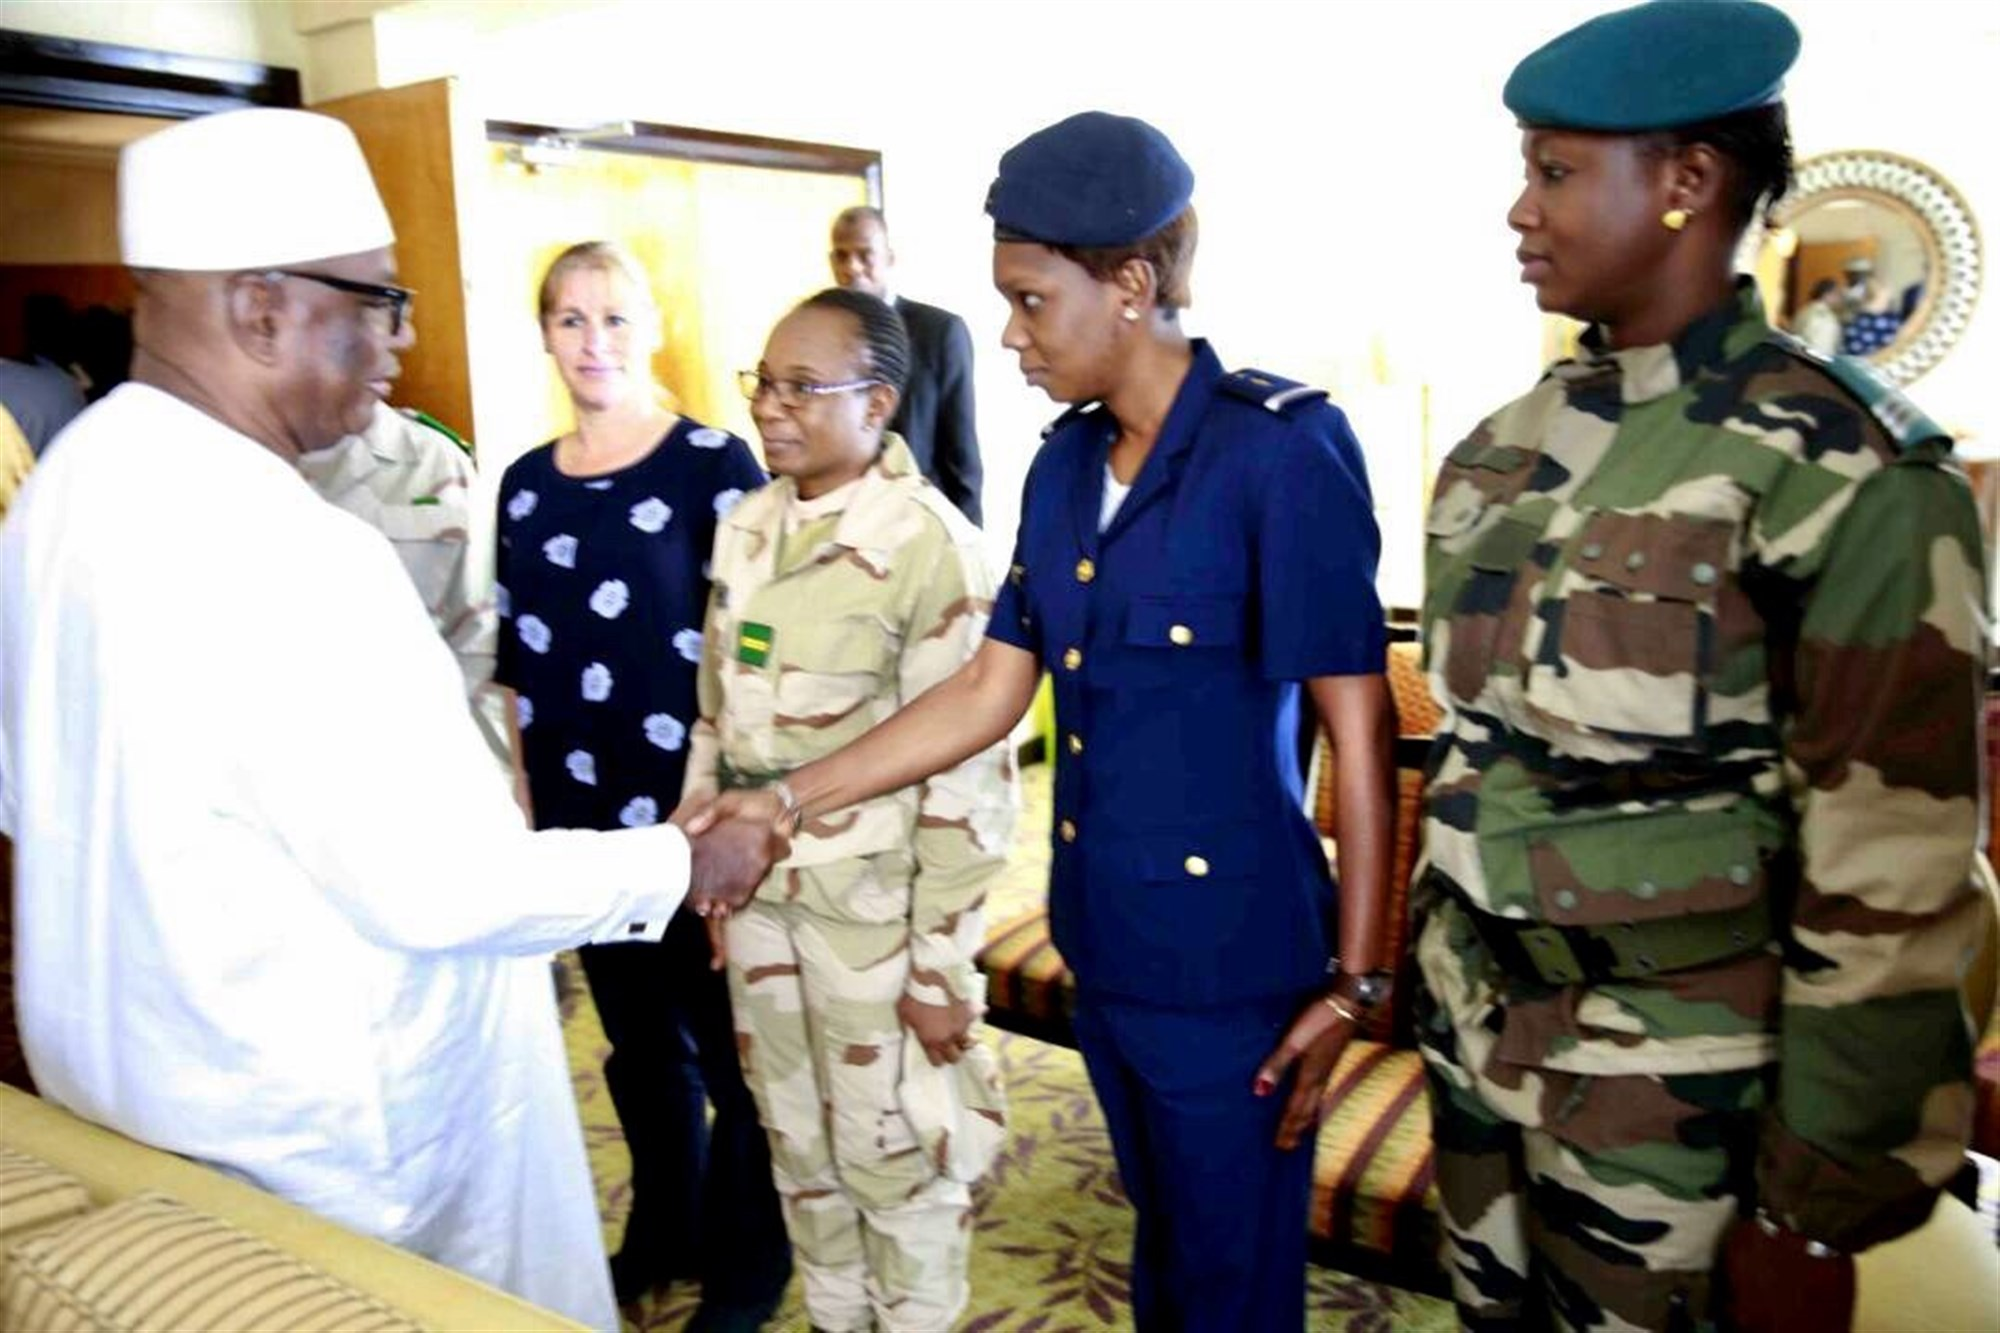 Students from Mali attending the U.S. Africa Command's Intelligence Directorate (J2) regional all-female Military Intelligence Professionals Course had the opportunity to meet Malian President Ibrahim Keita, who was in Dakar, Senegal for an unrelated event.